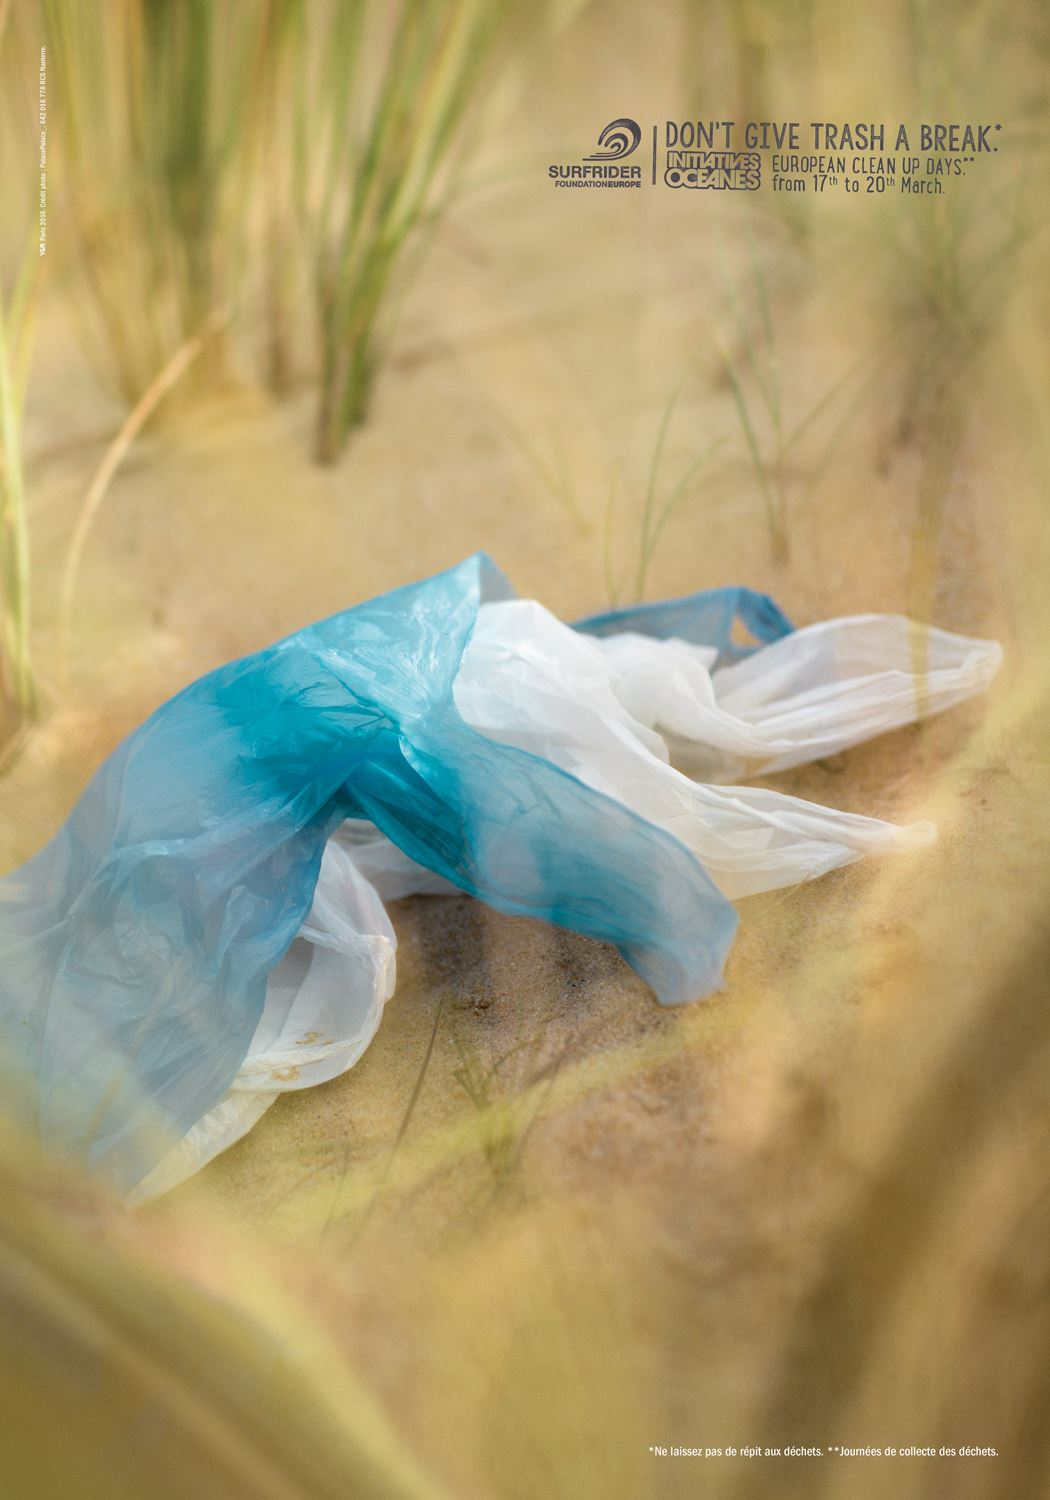 surfrider-foundation-marketing-commercial-ad-dont-give-trash-a-break-agence-yr-paris-2